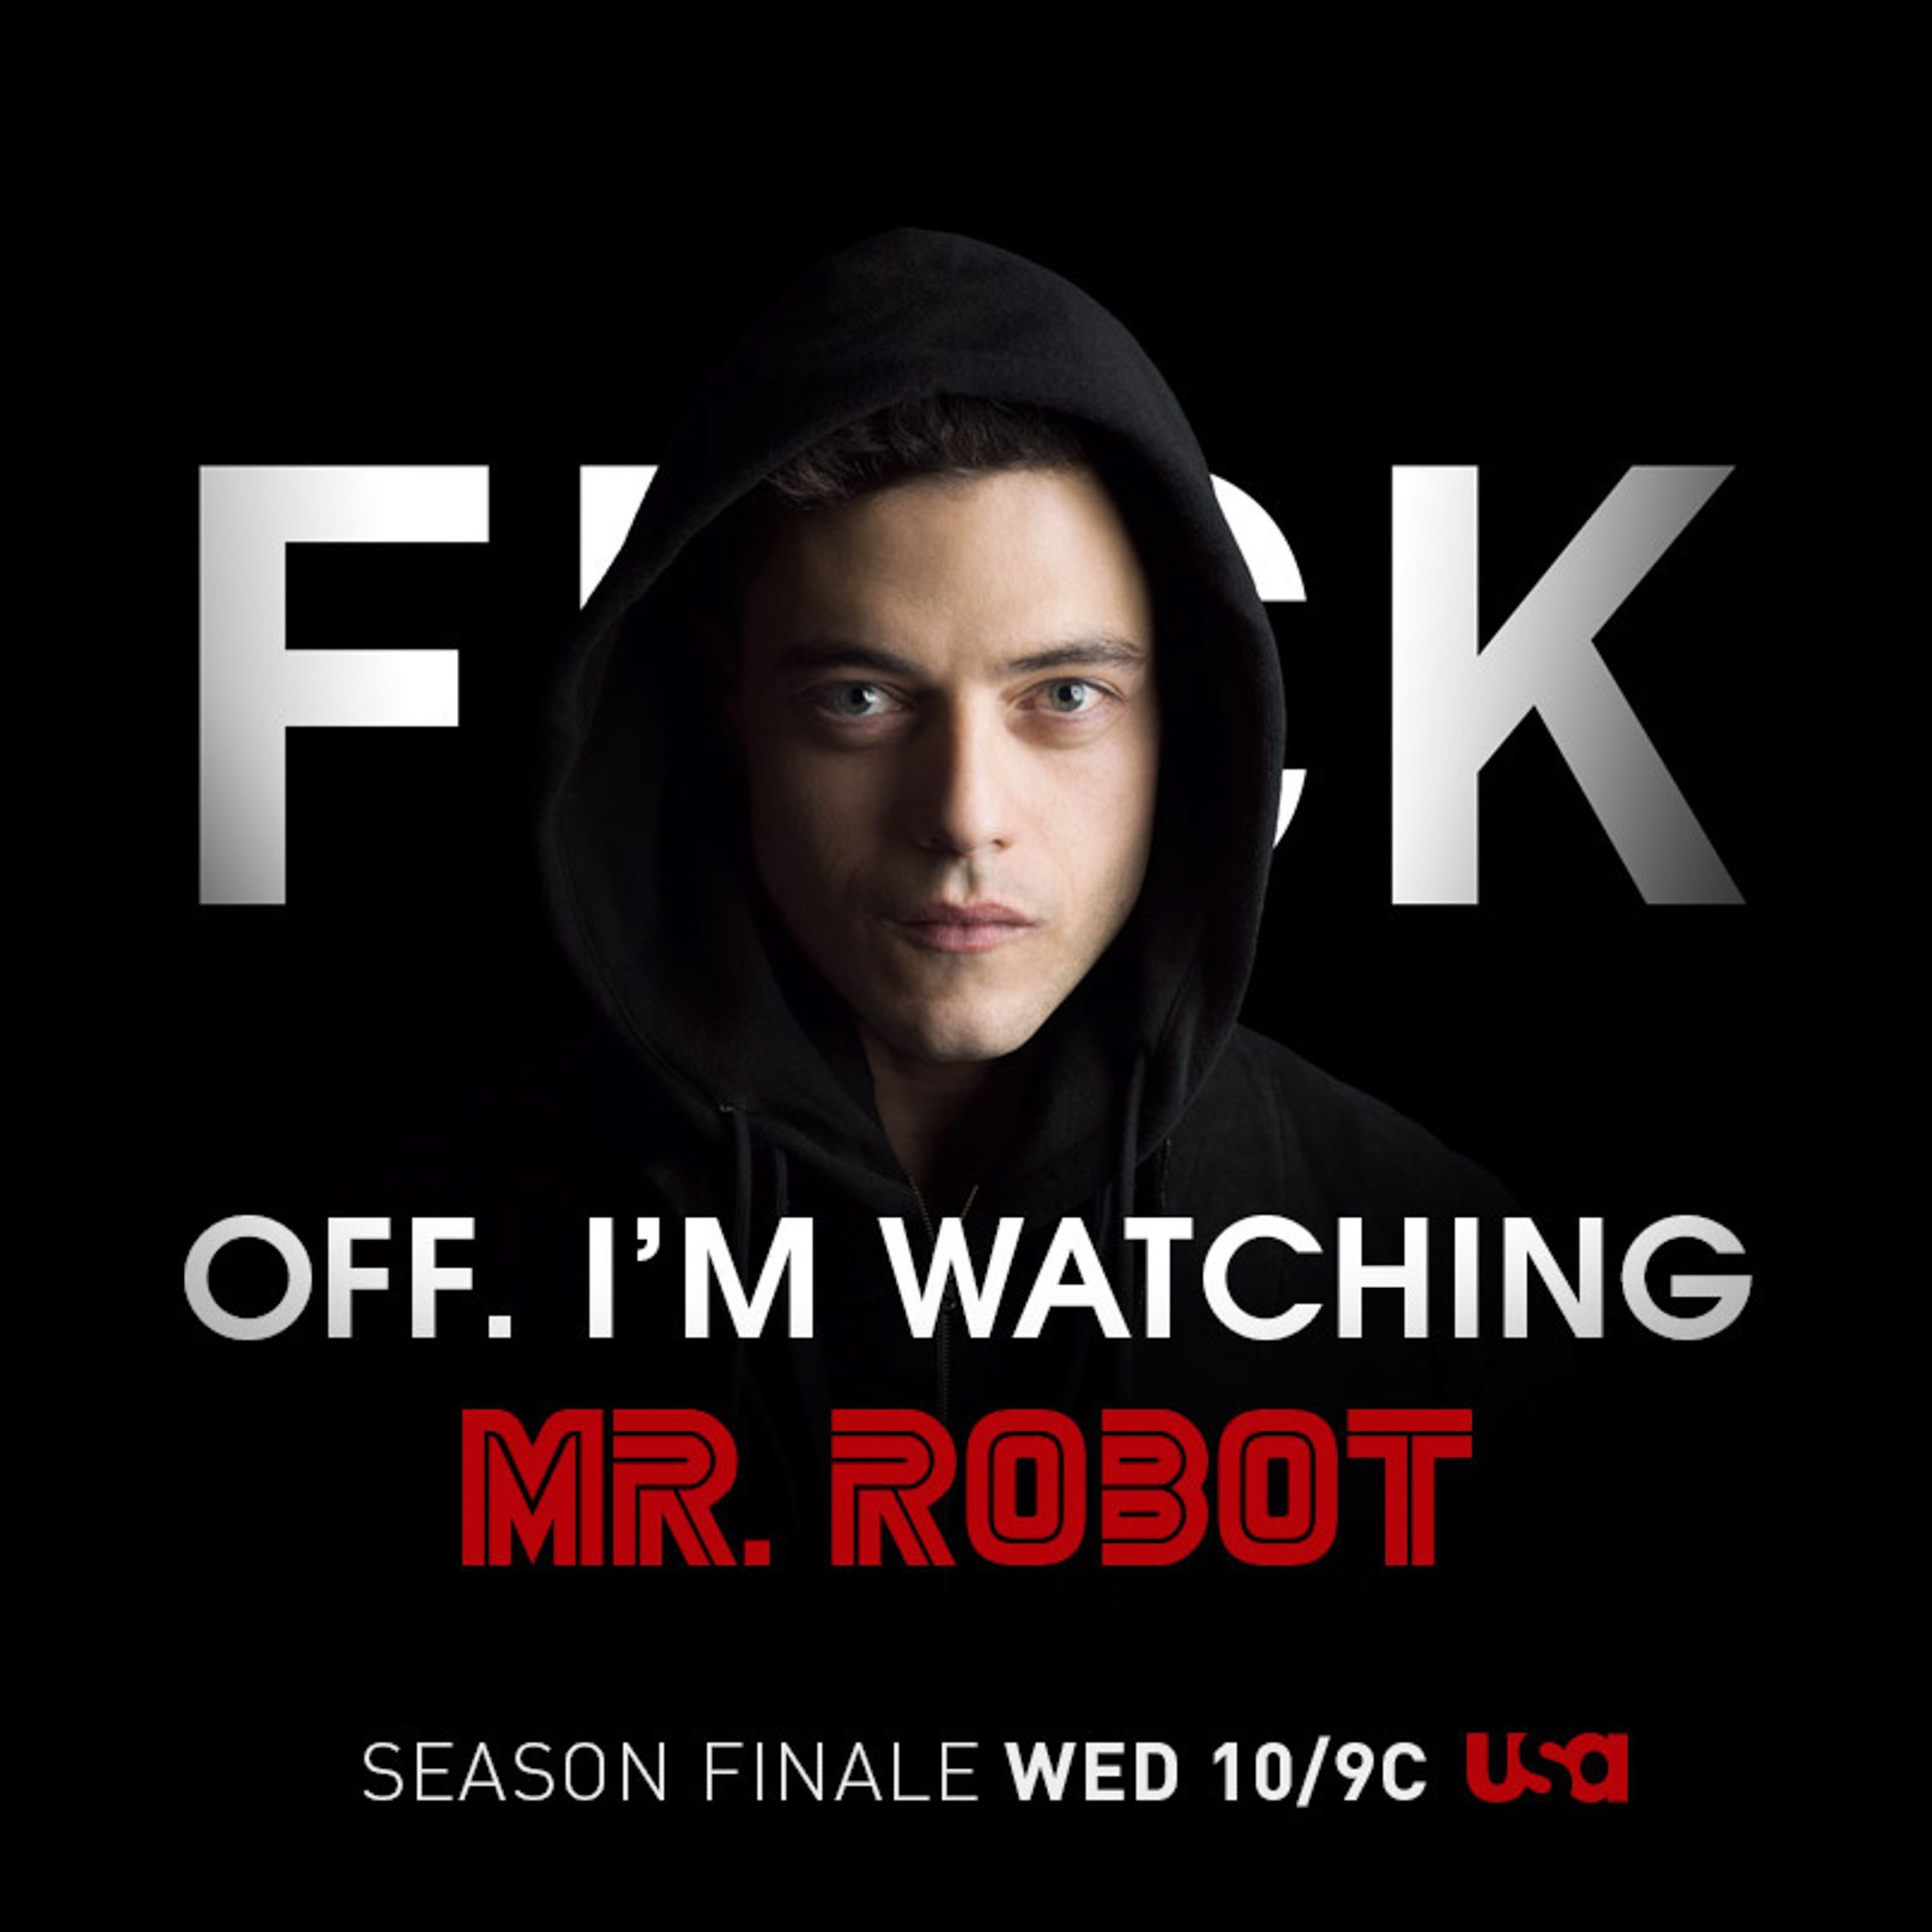 Mr. Robot (806 x 806) VoicesFILM.com